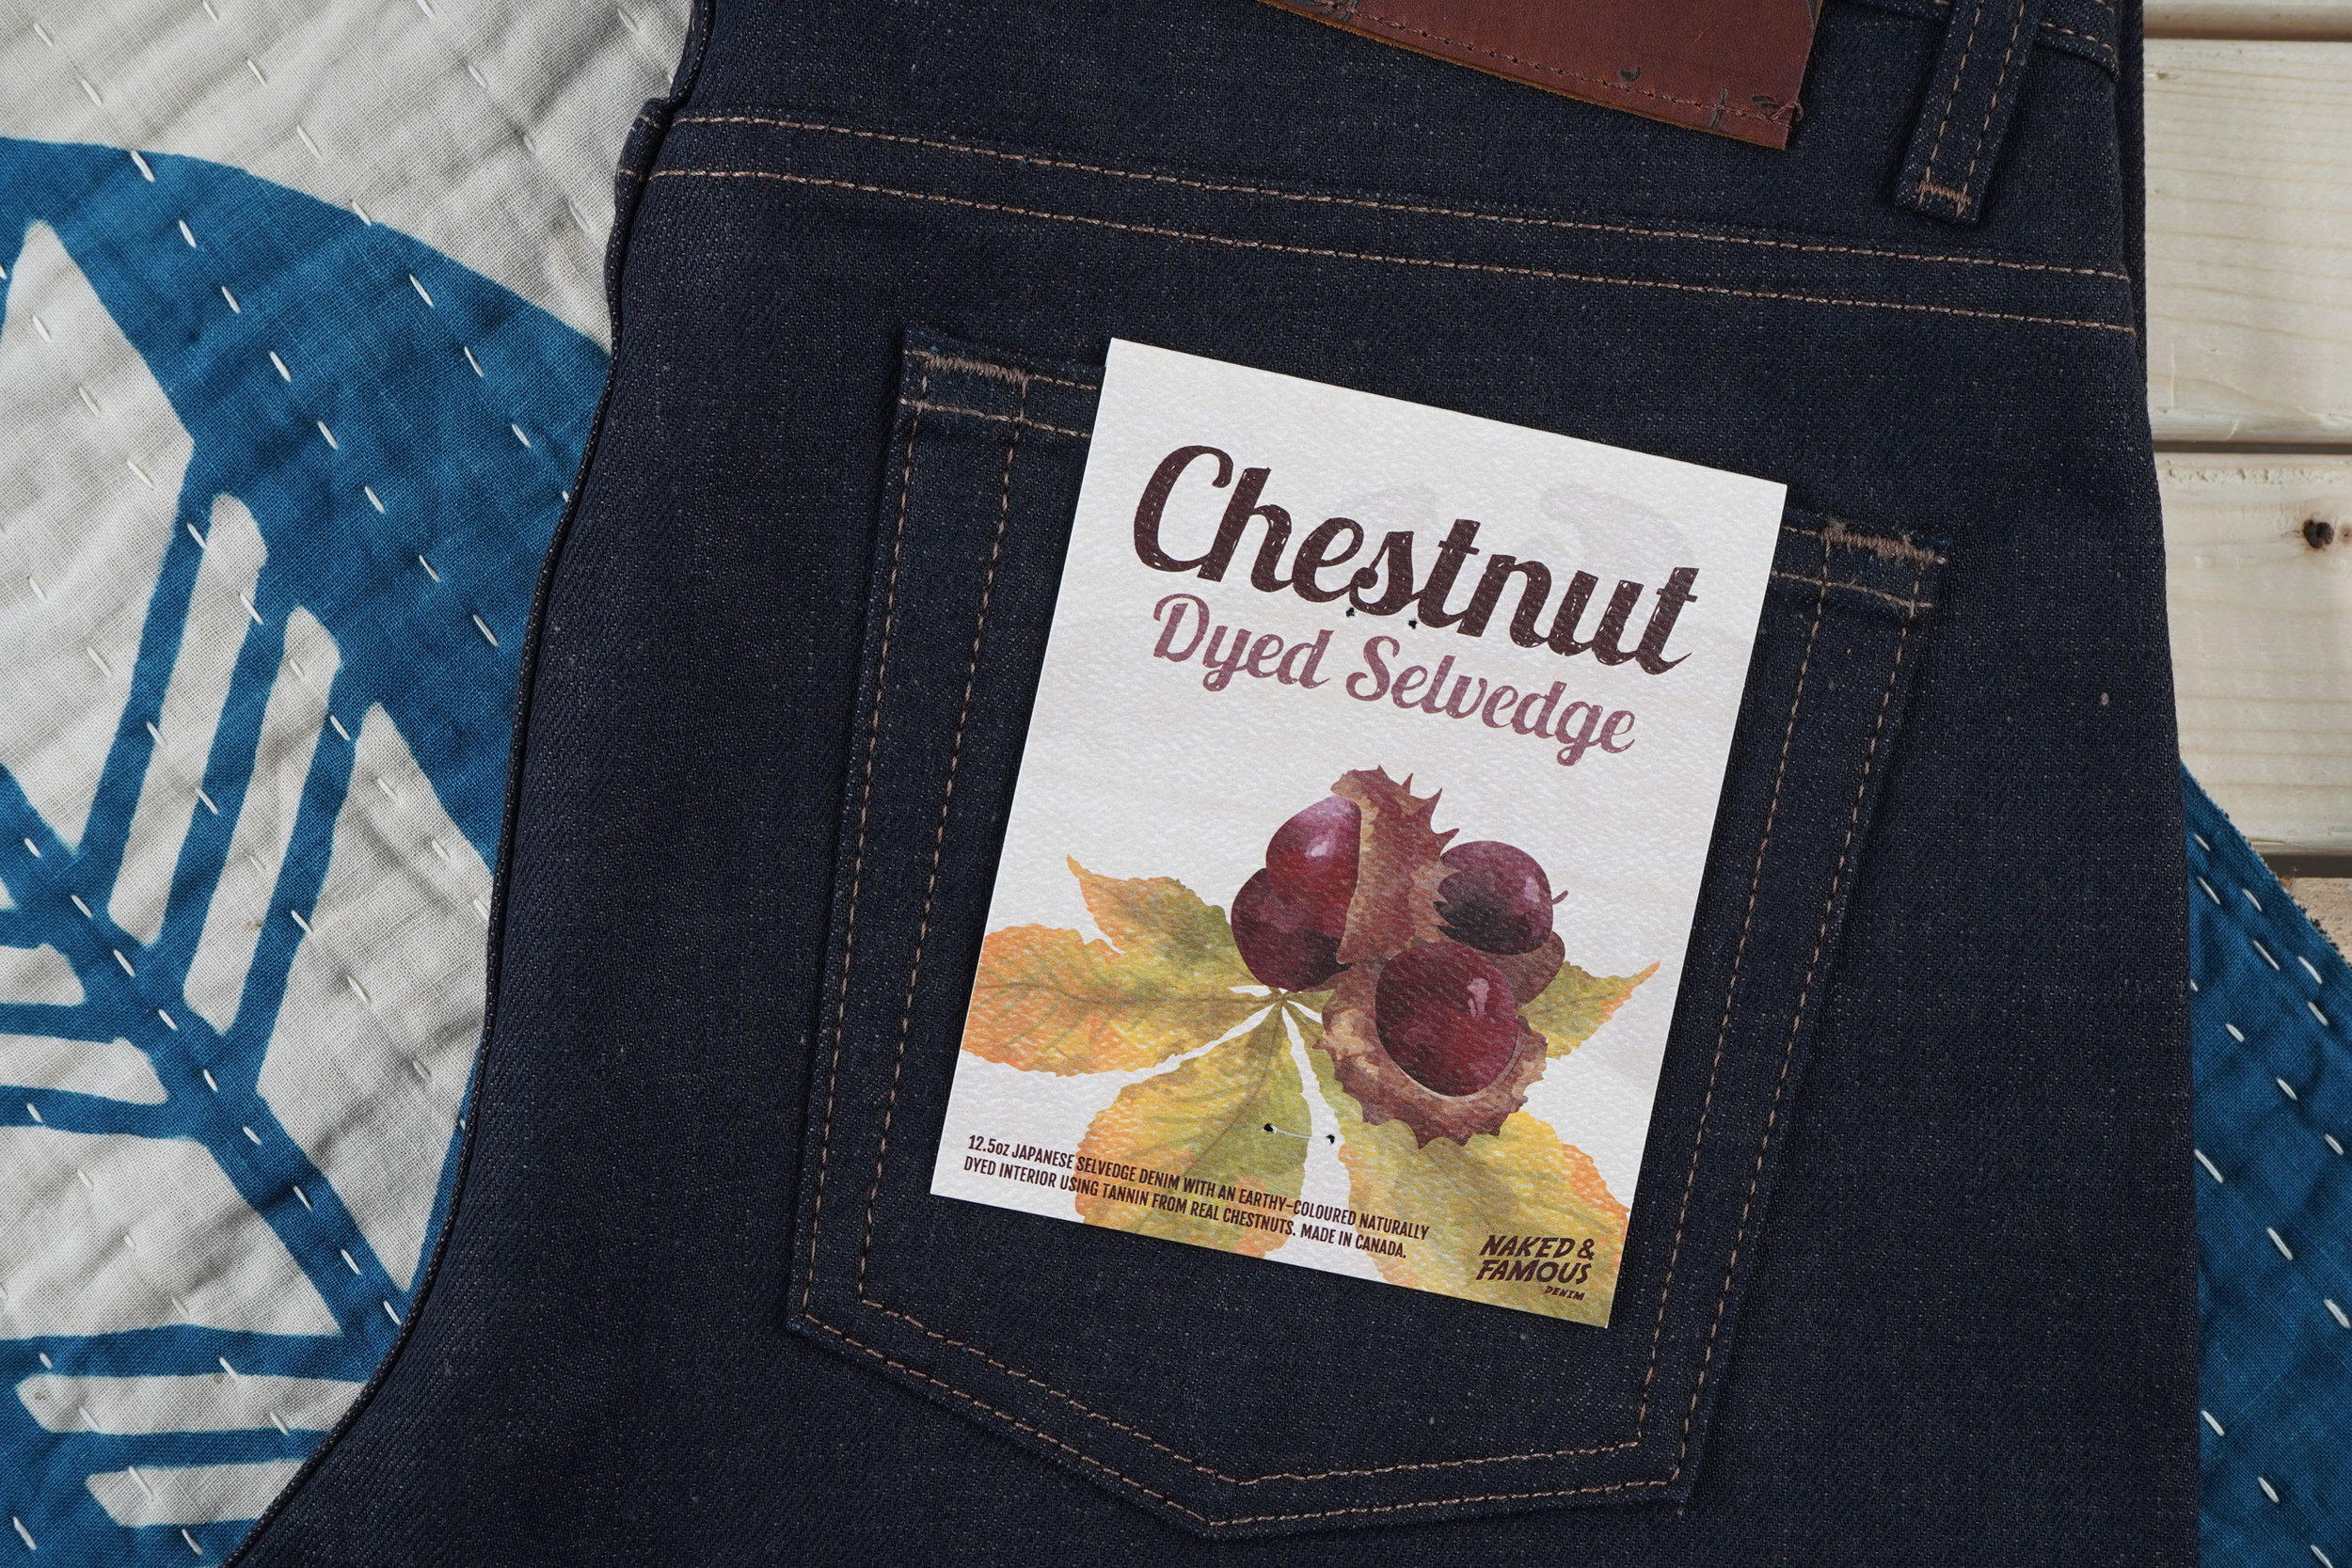 chestnut-dyed-selvedge-flasher-3x2.jpg